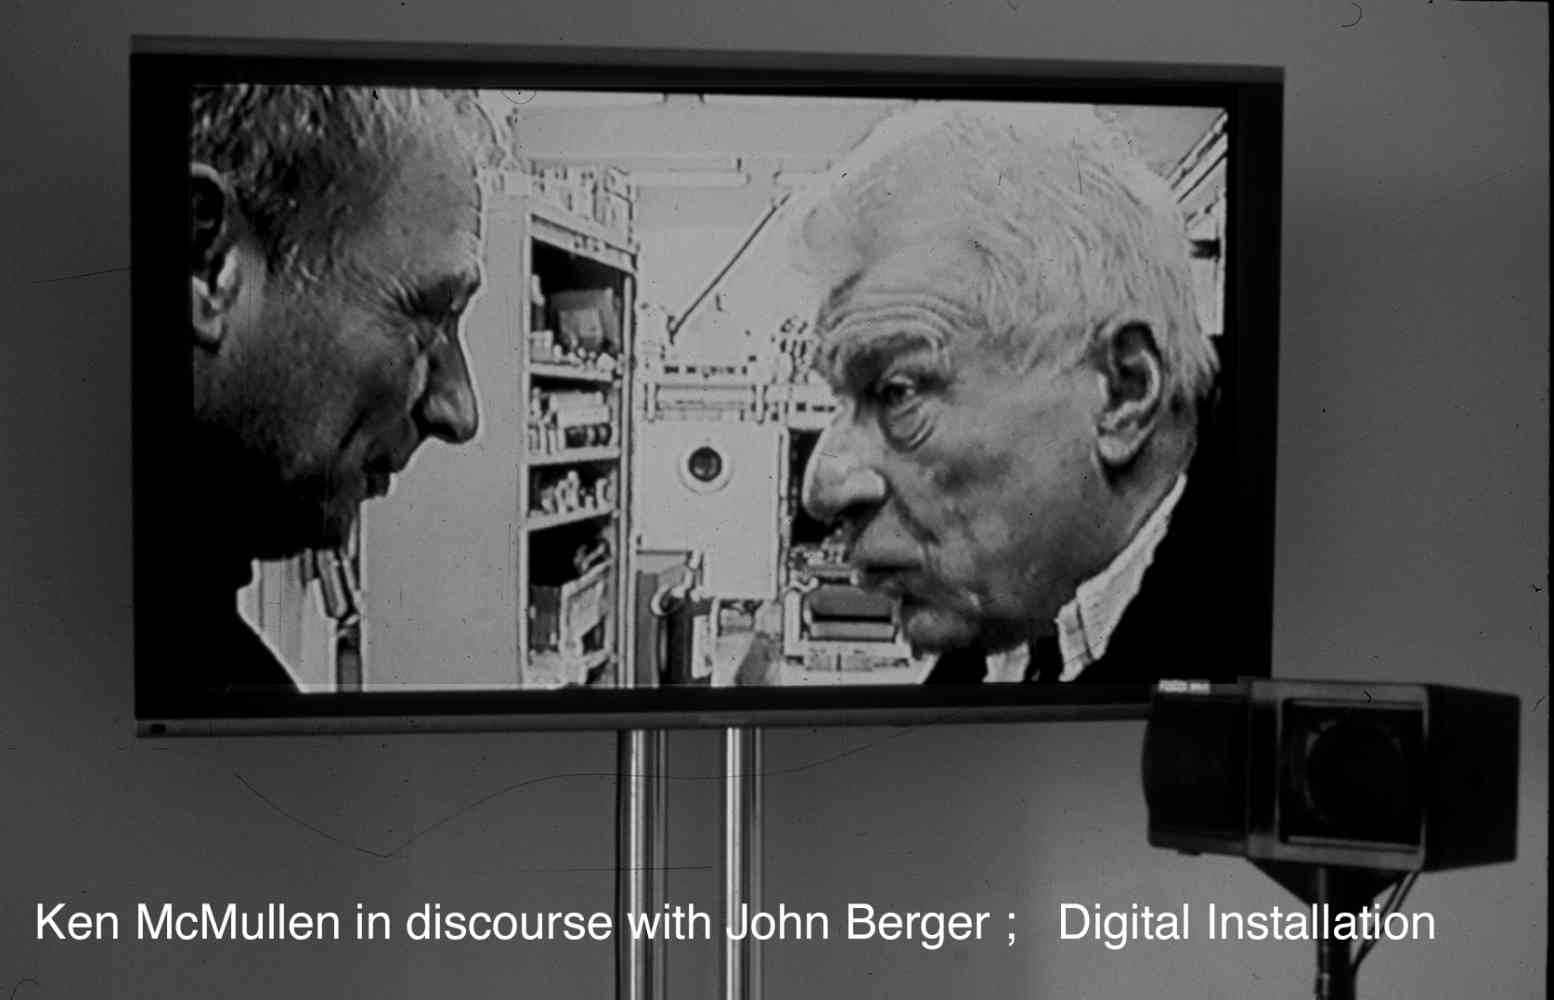 Gallery Installation. 60 mins continuous loop:   Atlantis Gallery London... (Research) - Documentary with John Berger 'The validity of Research in Art and Science'